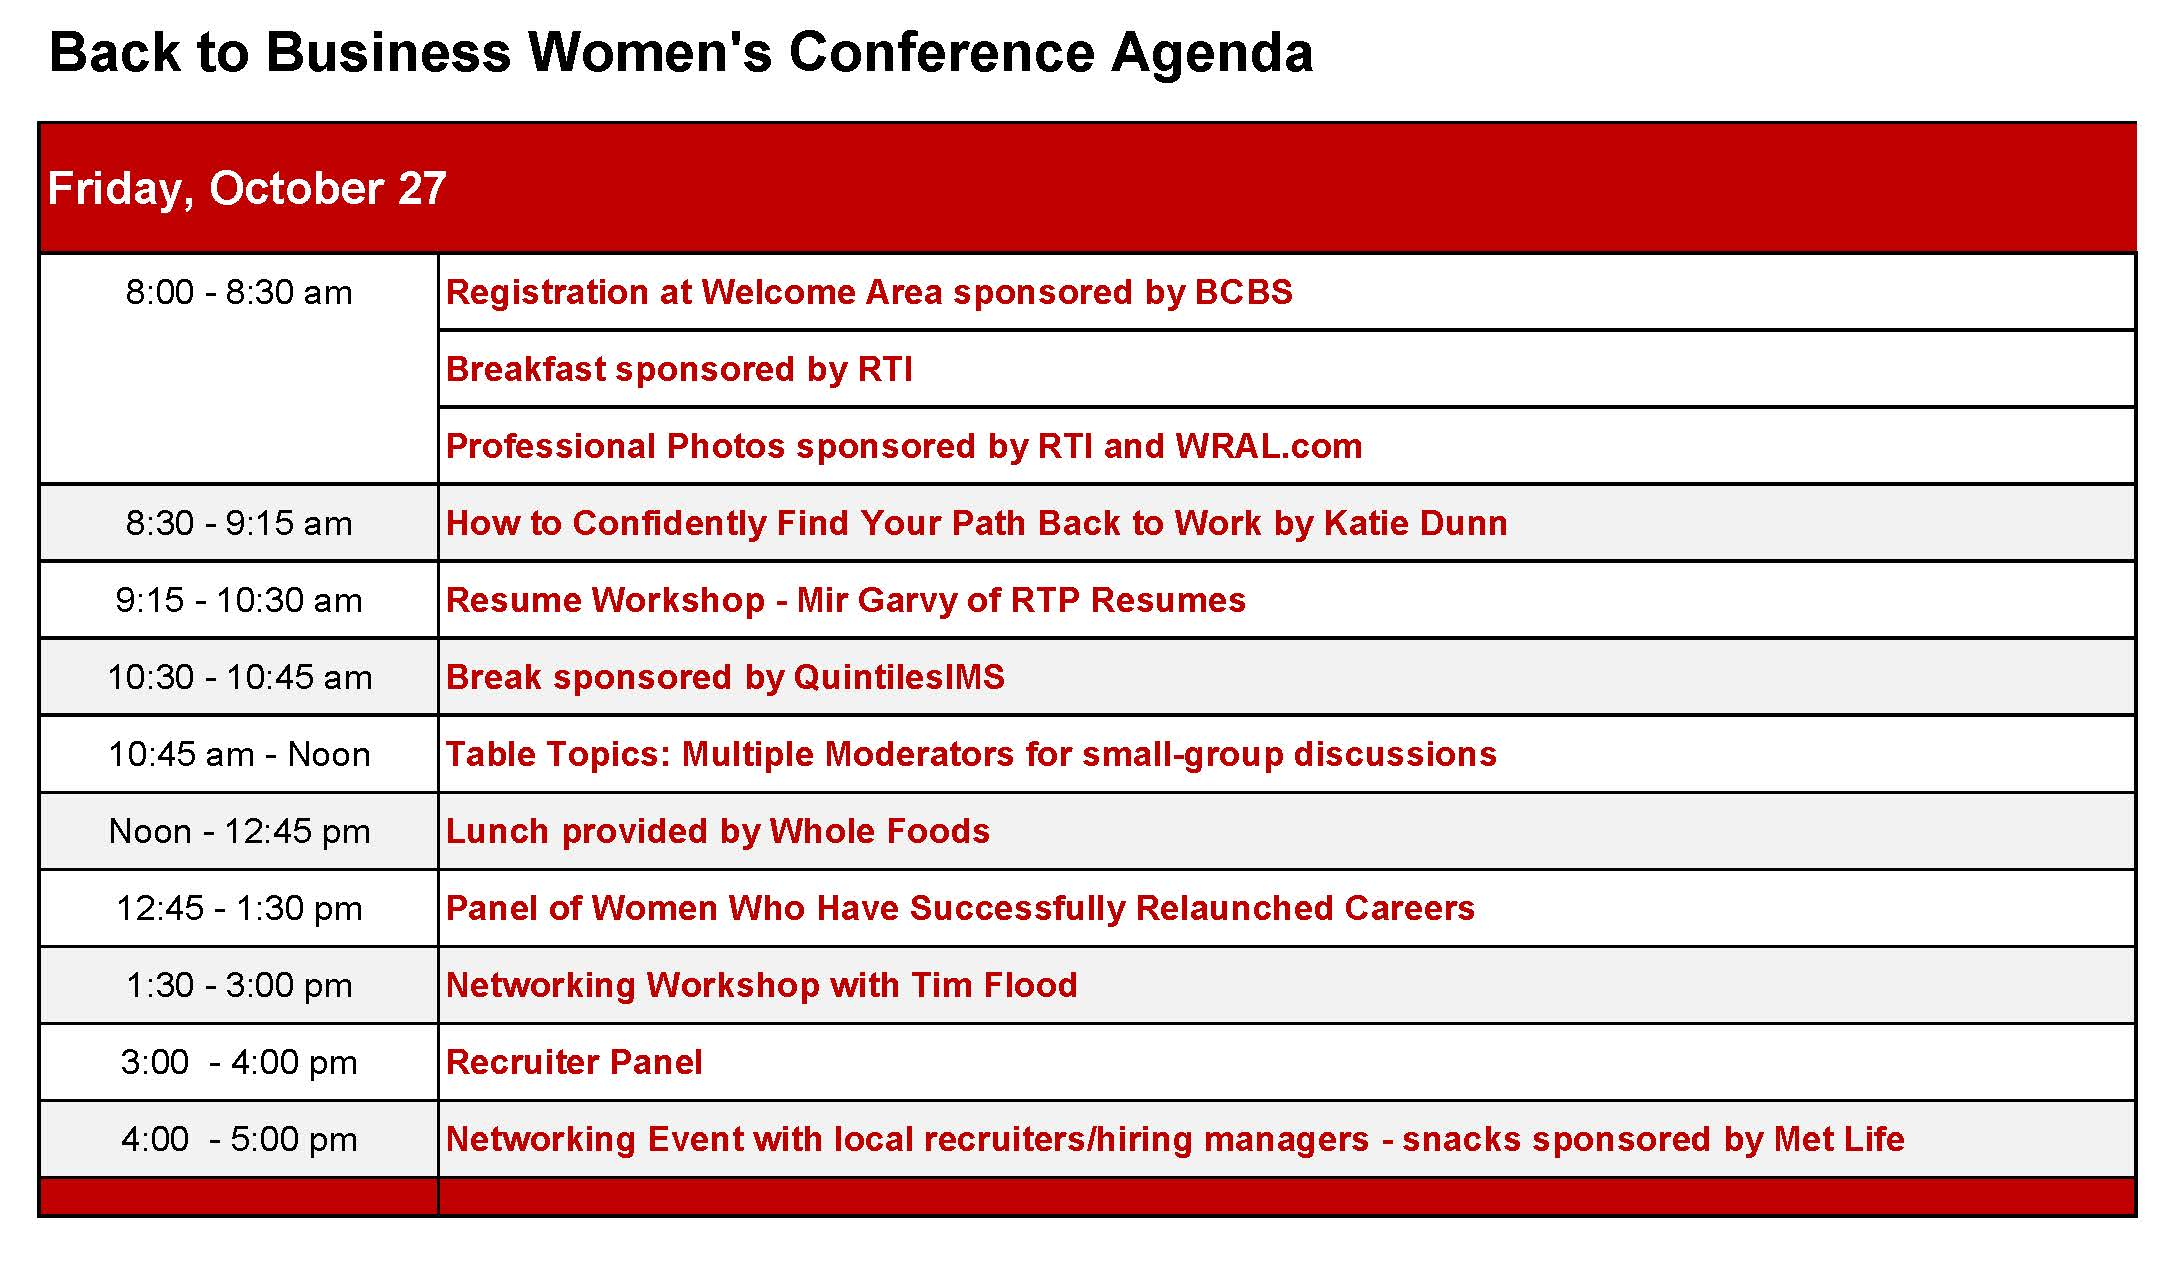 Conference Agenda - Back to Business